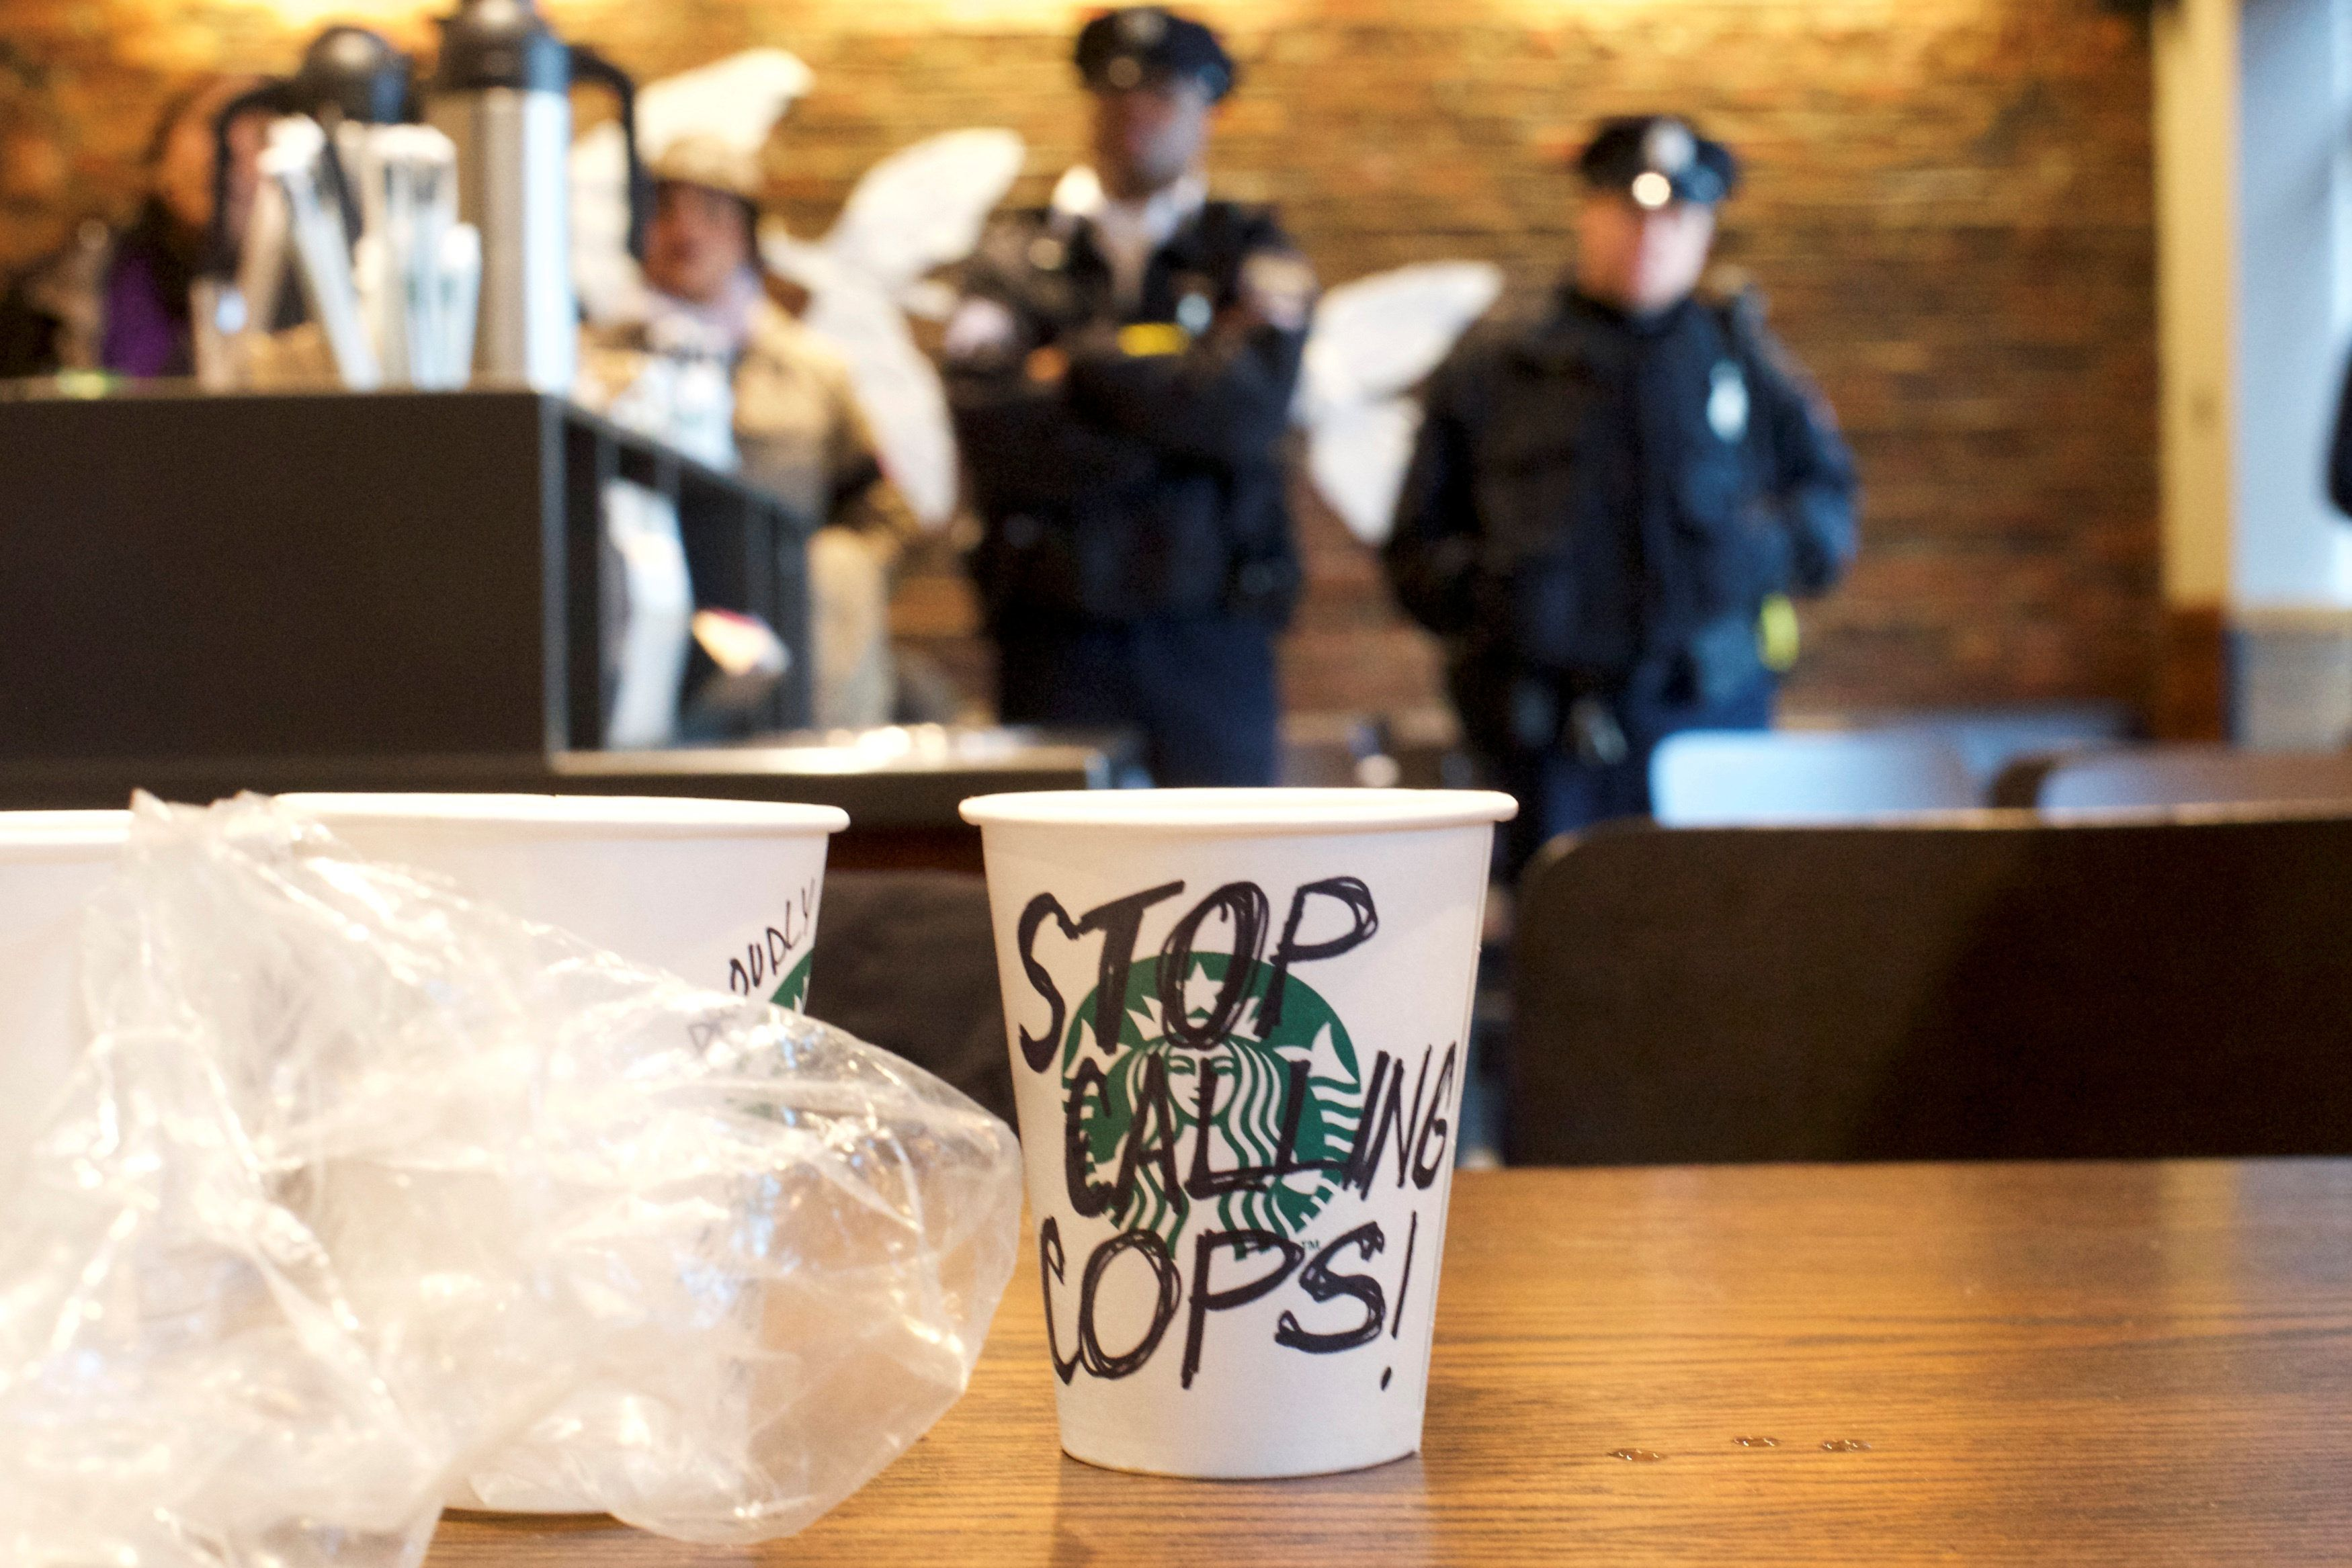 """A Starbucks coffee cup with """"Stop callingcops!"""" written on the side sits on a table as police monitor protesters inside"""